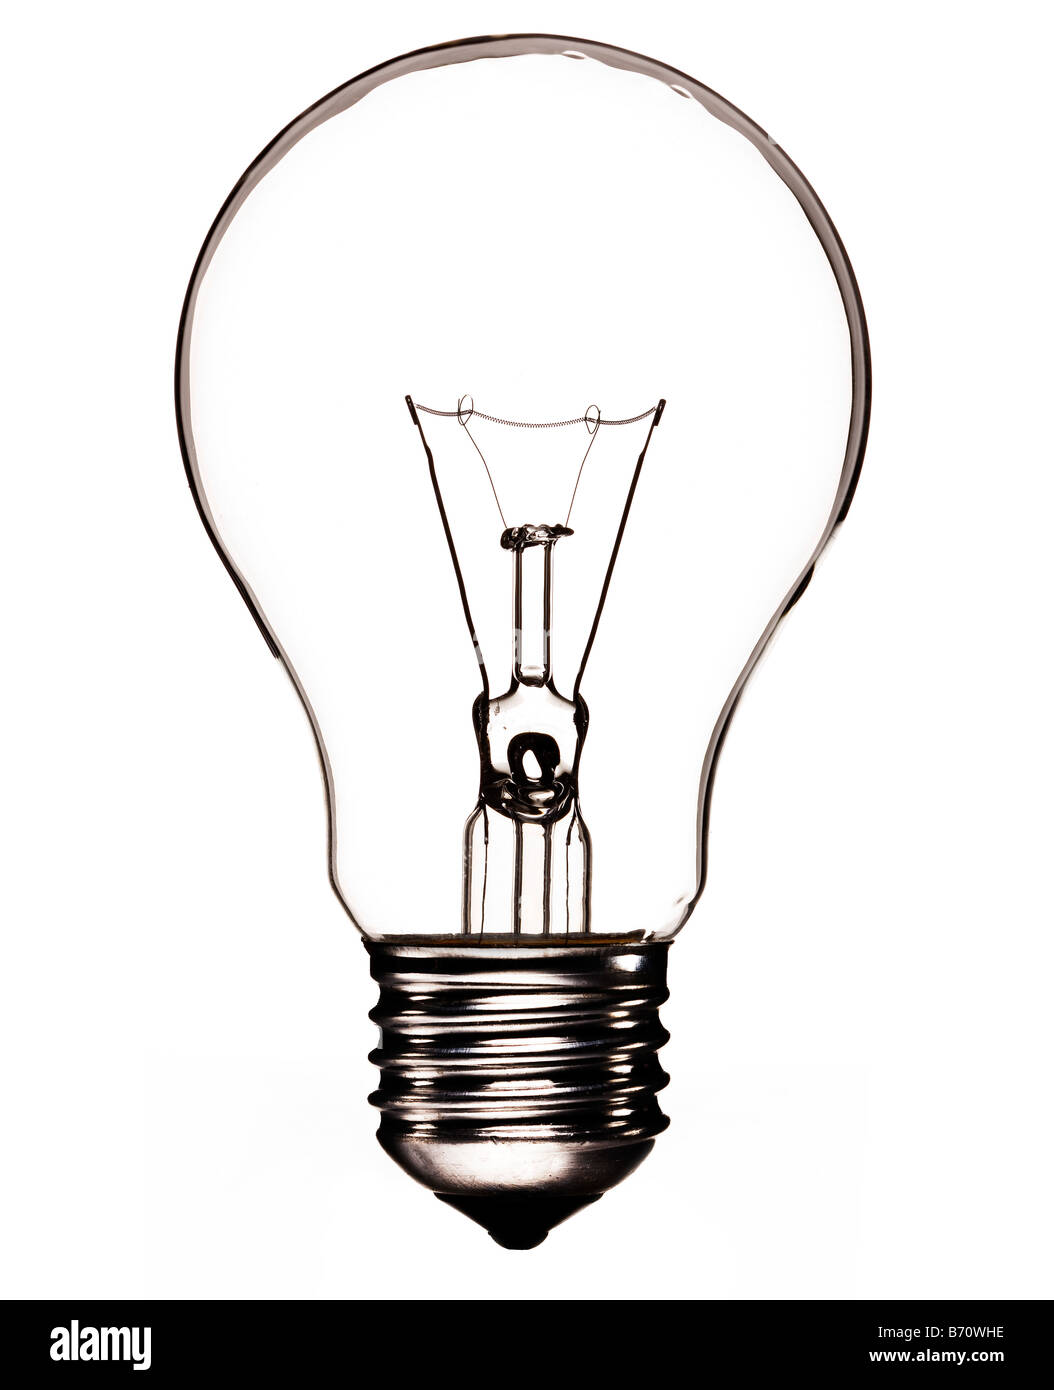 "Transparent lightbulb with filament and Edison Screw or ""ES"" lamp fitting - Stock Image"